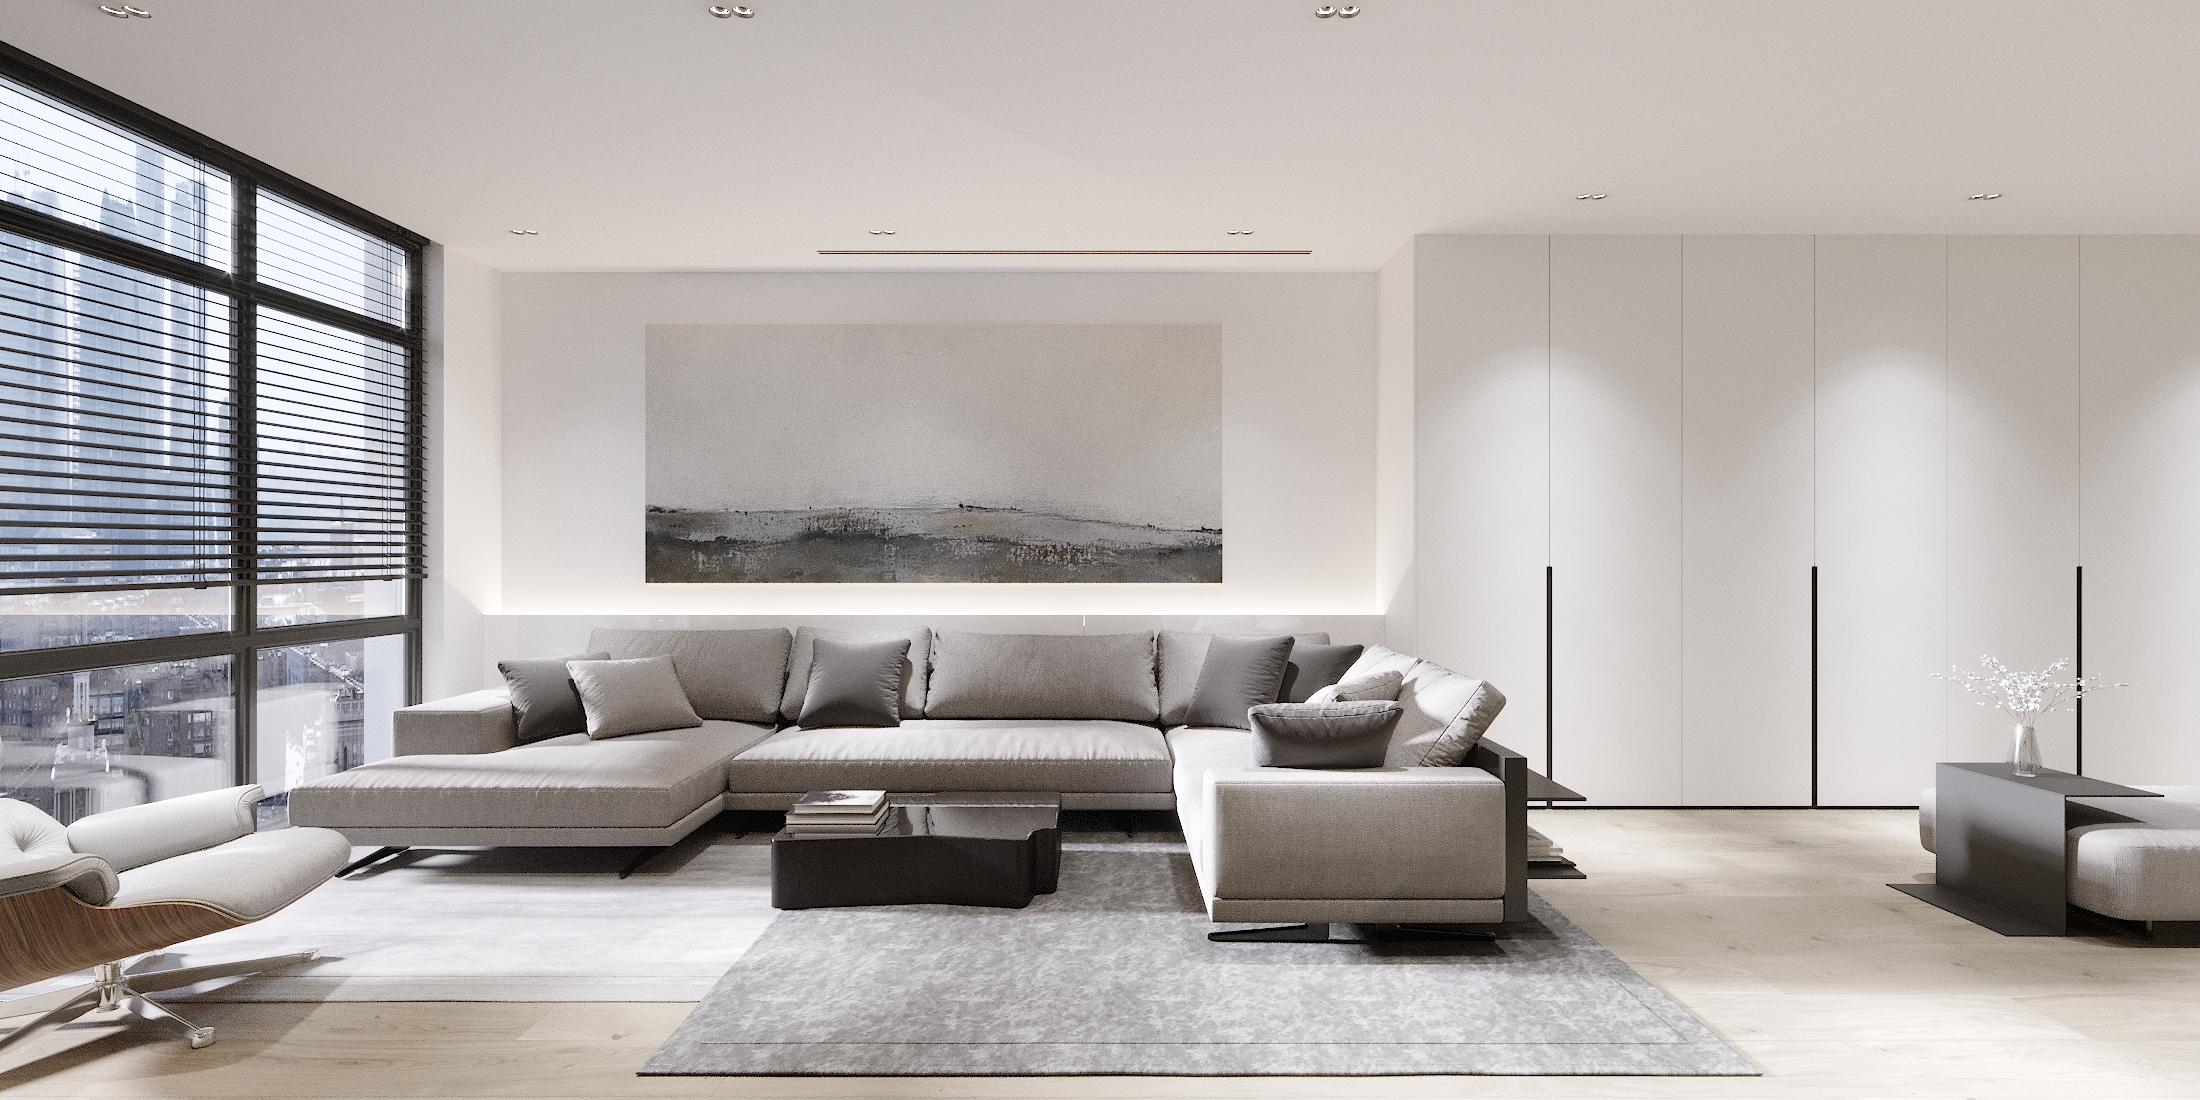 Shades of grey 1907 living room_2